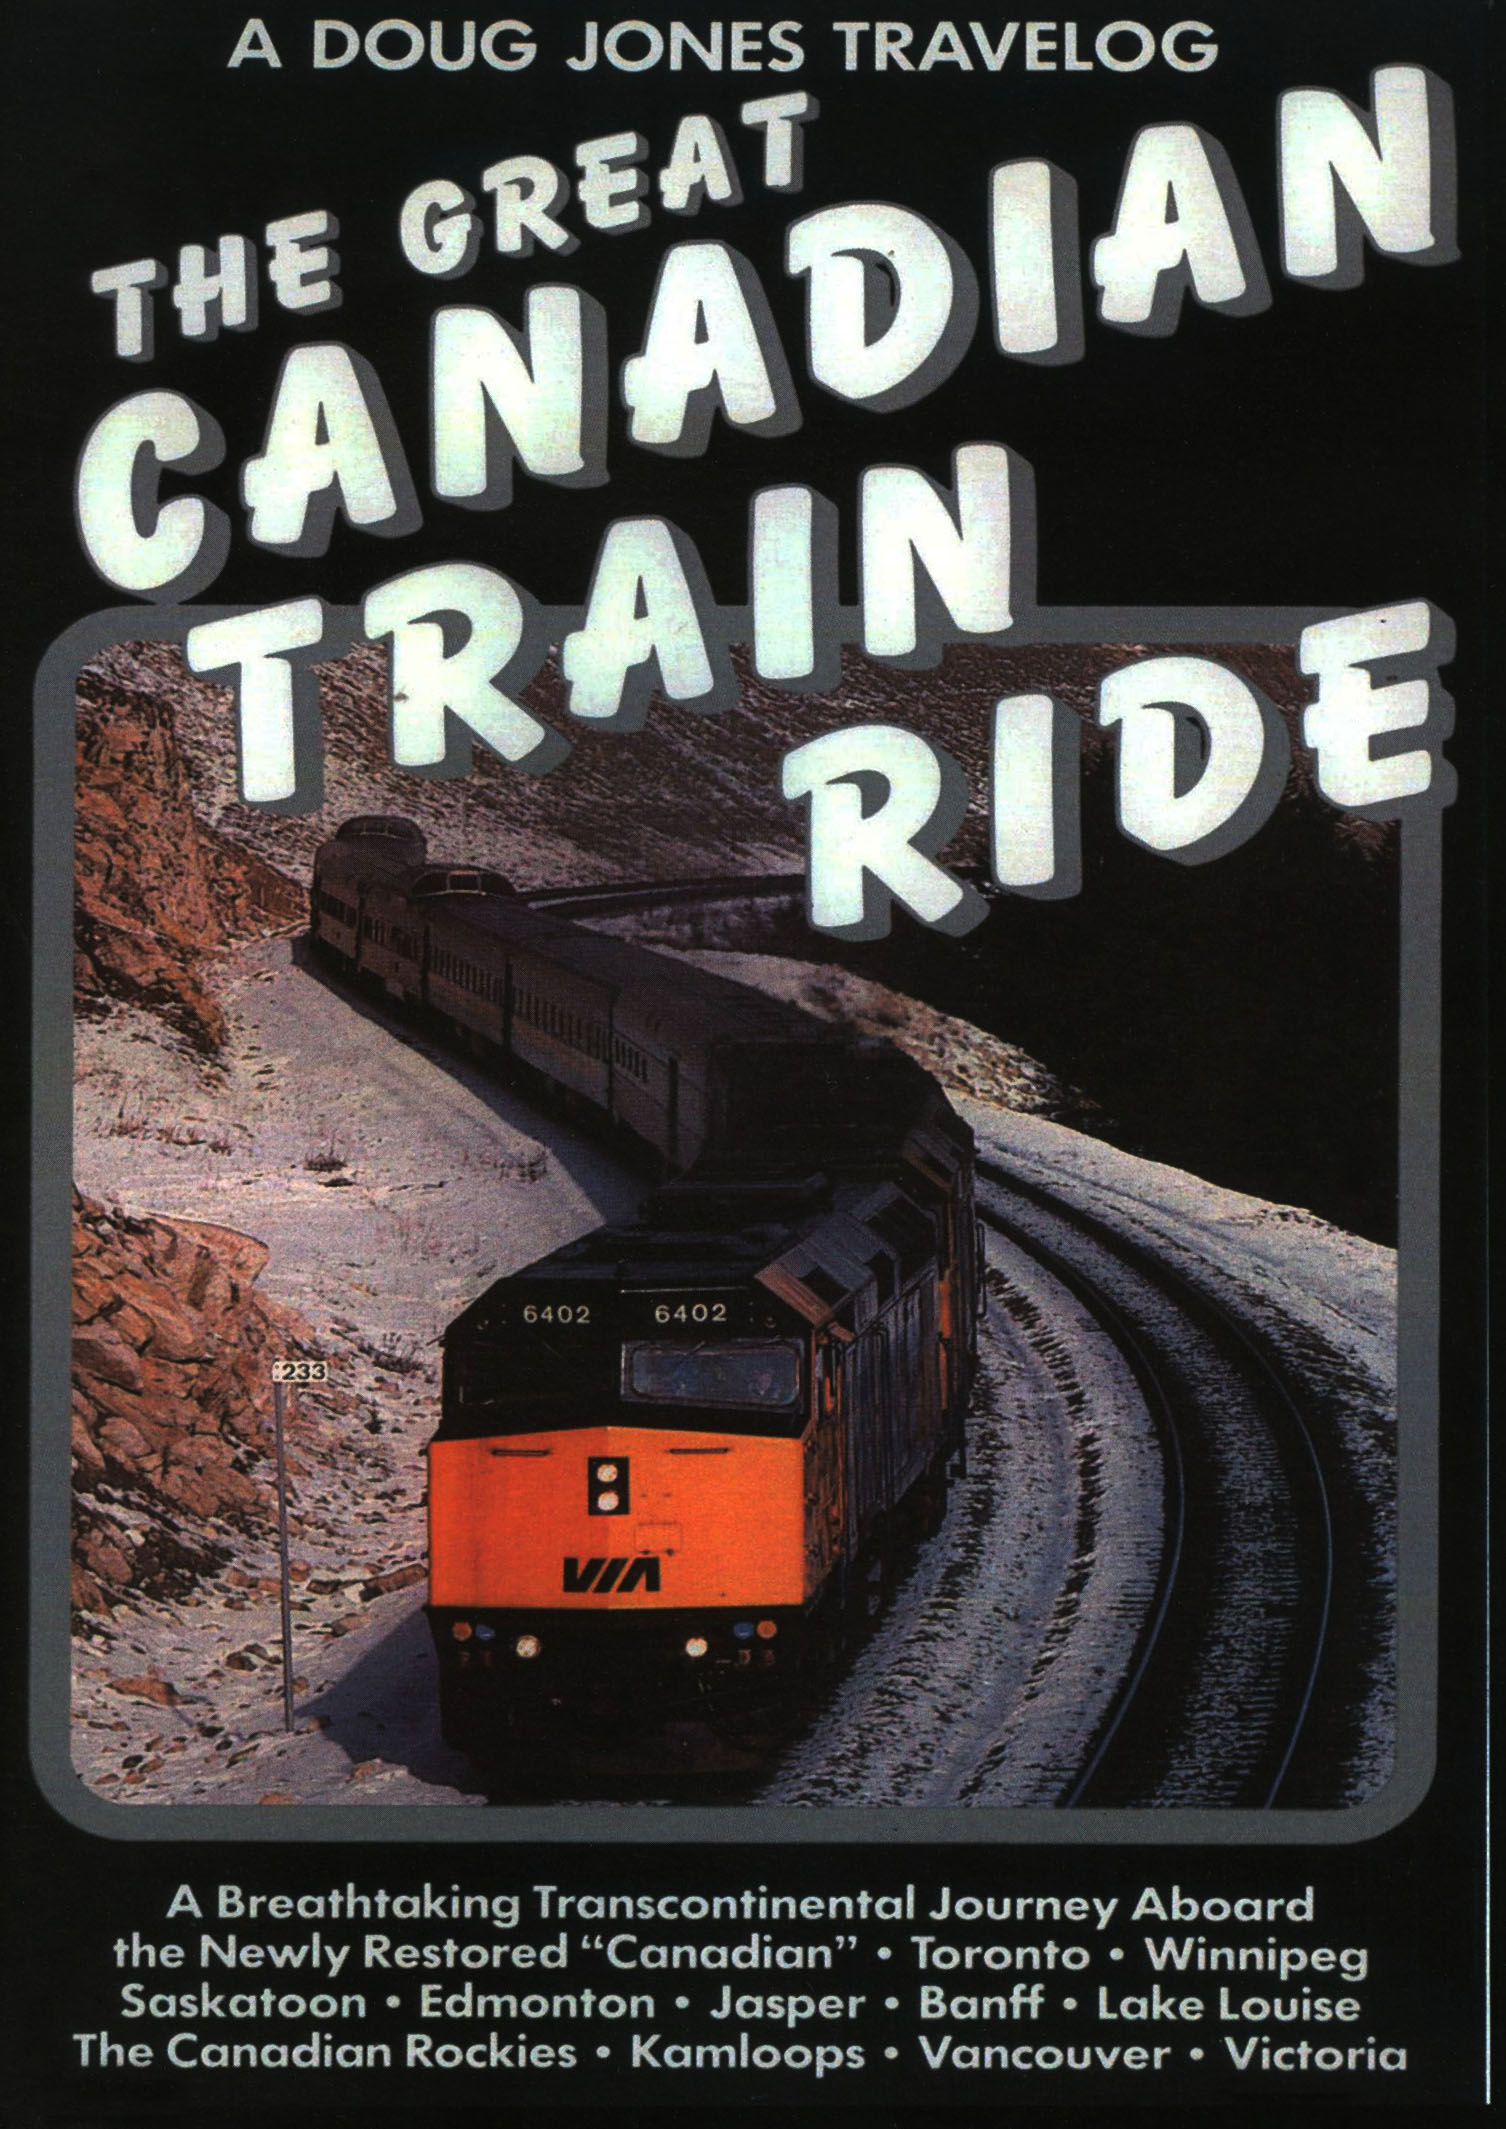 The Great Canadian Train Ride - From Toronto to Vancouver